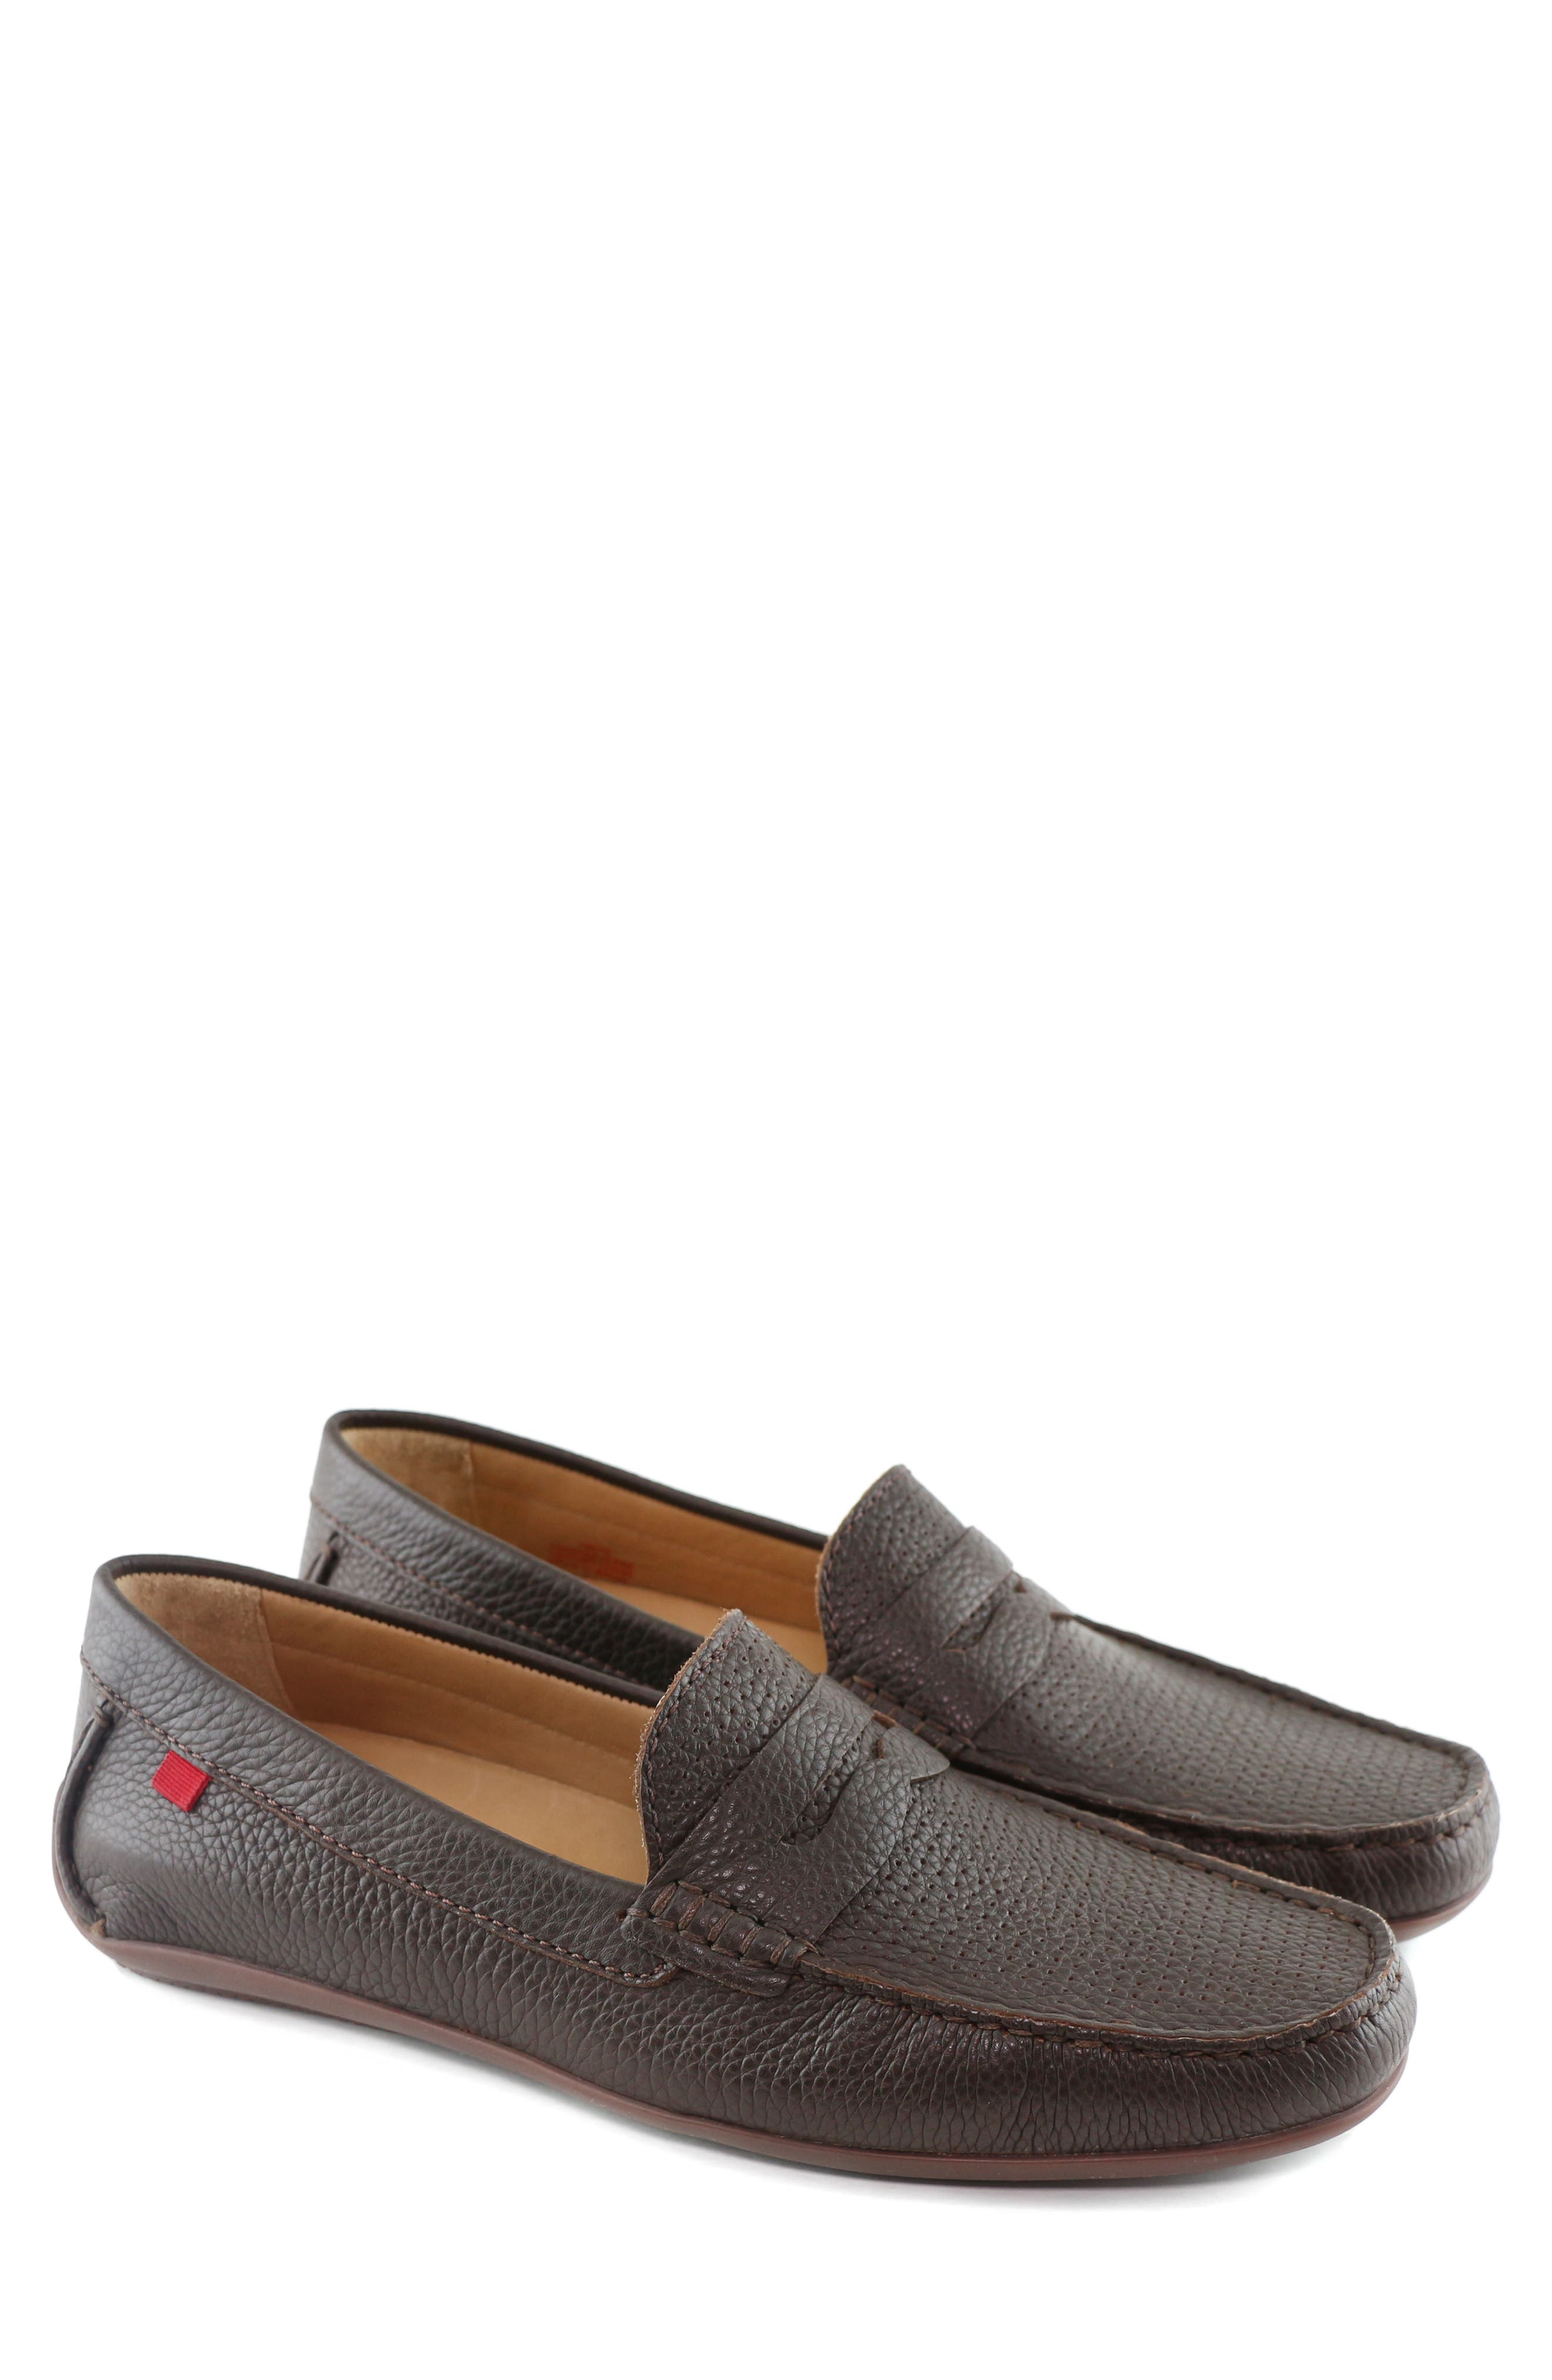 MARC JOSEPH NEW YORK, 'Union Street' Penny Loafer, Alternate thumbnail 8, color, BROWN GRAINY LEATHER